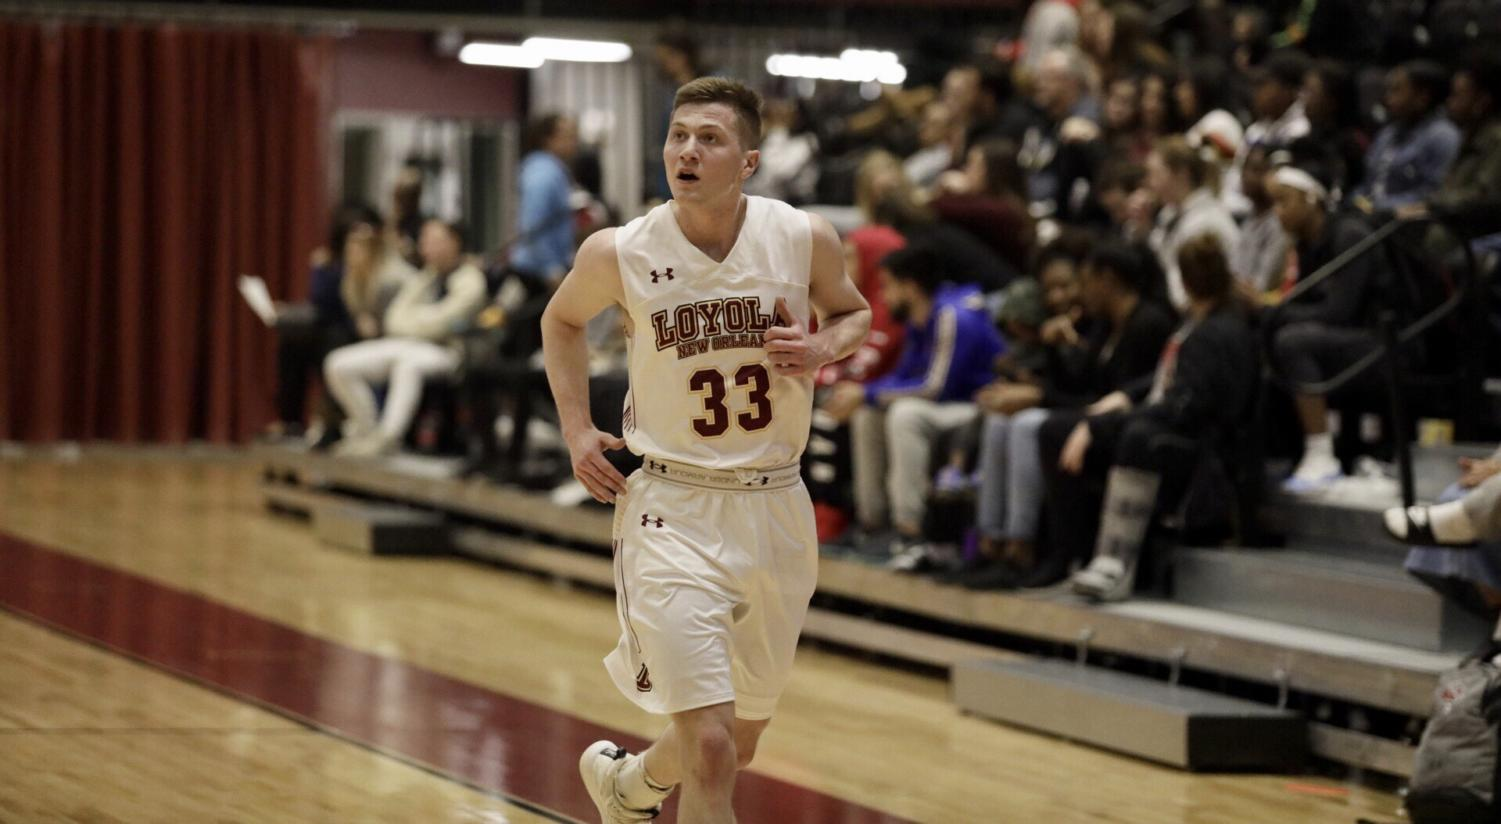 Finance senior Ethan Turner (33) jogs in transition at a Loyola home game in The Den. Turner won three scholar awards this season. Photo credit: Andres Fuentes